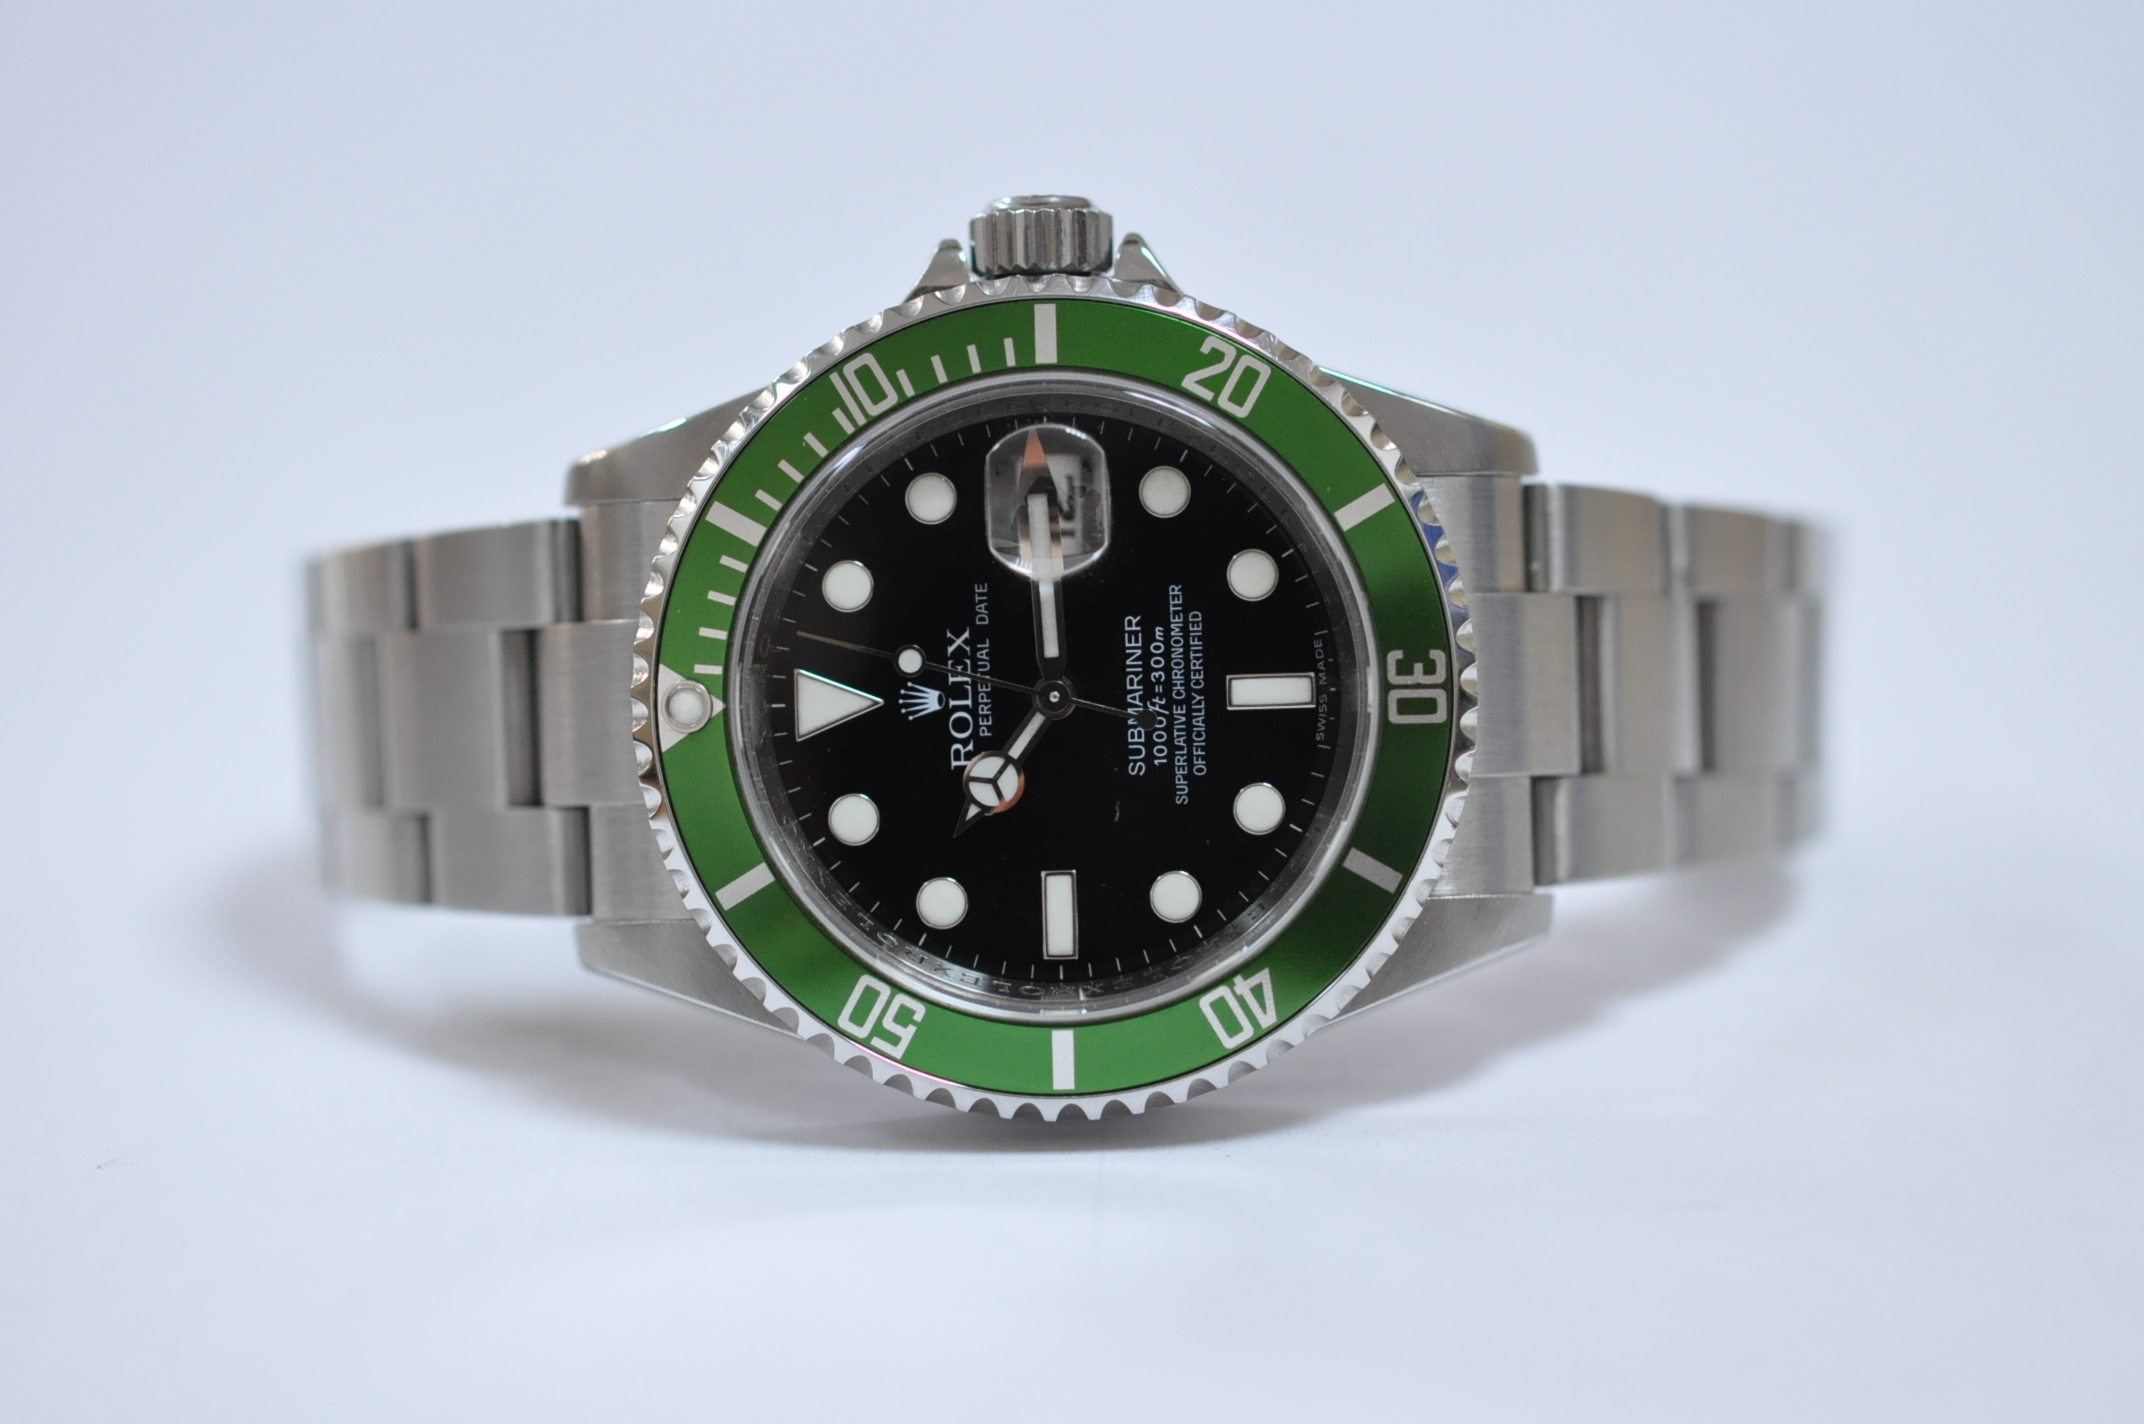 2007 Submariner LV 'Kermit'